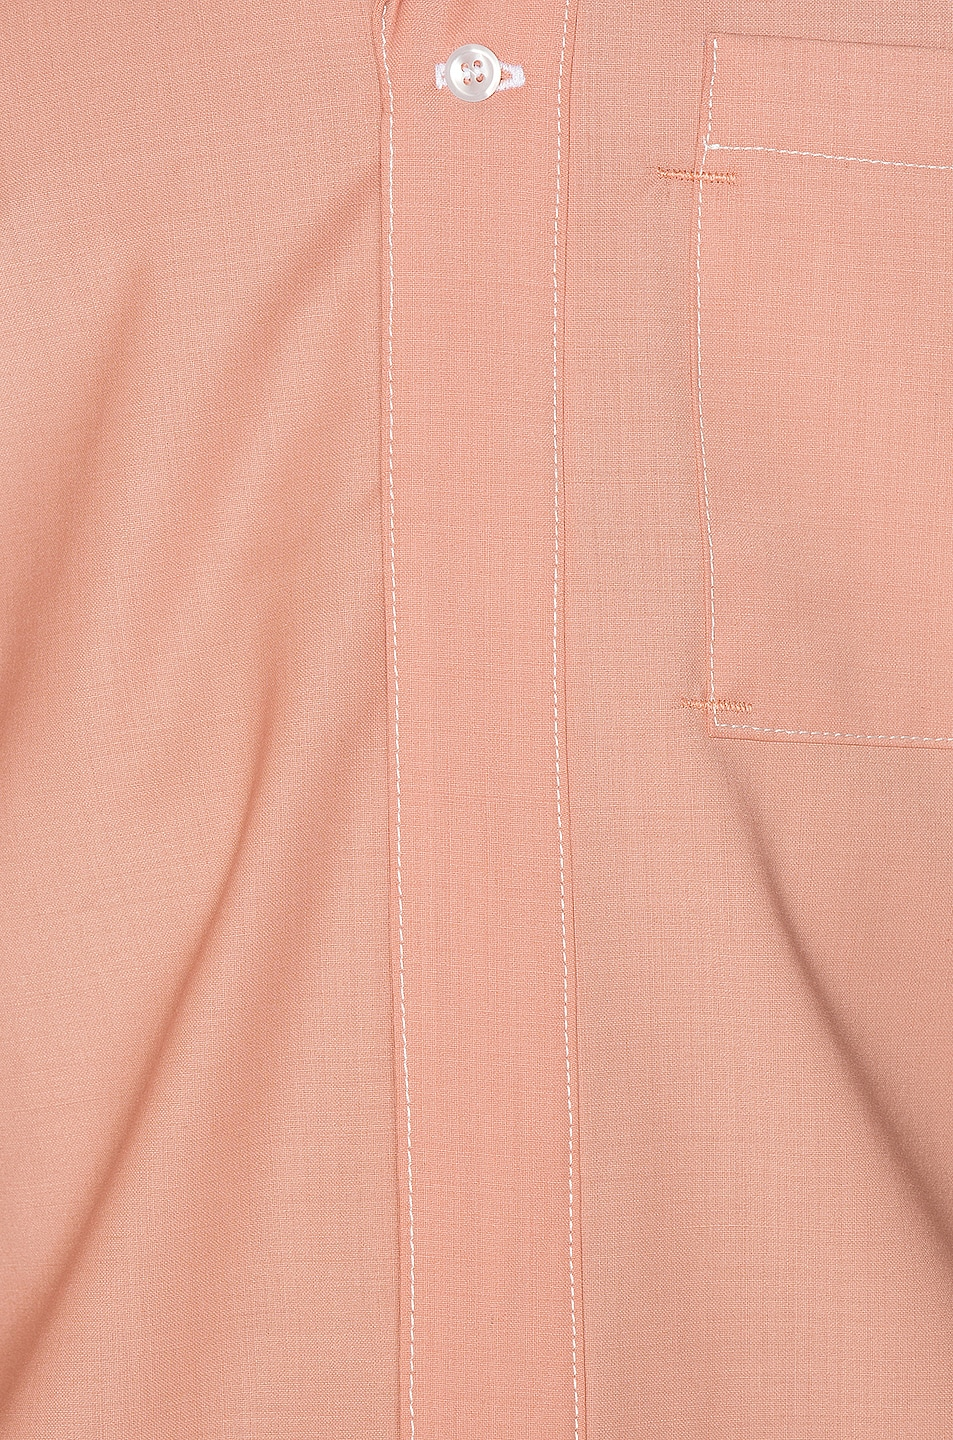 Image 6 of Pyer Moss Patched 50/50 Bowling Shirt in Black & Dusty Pink